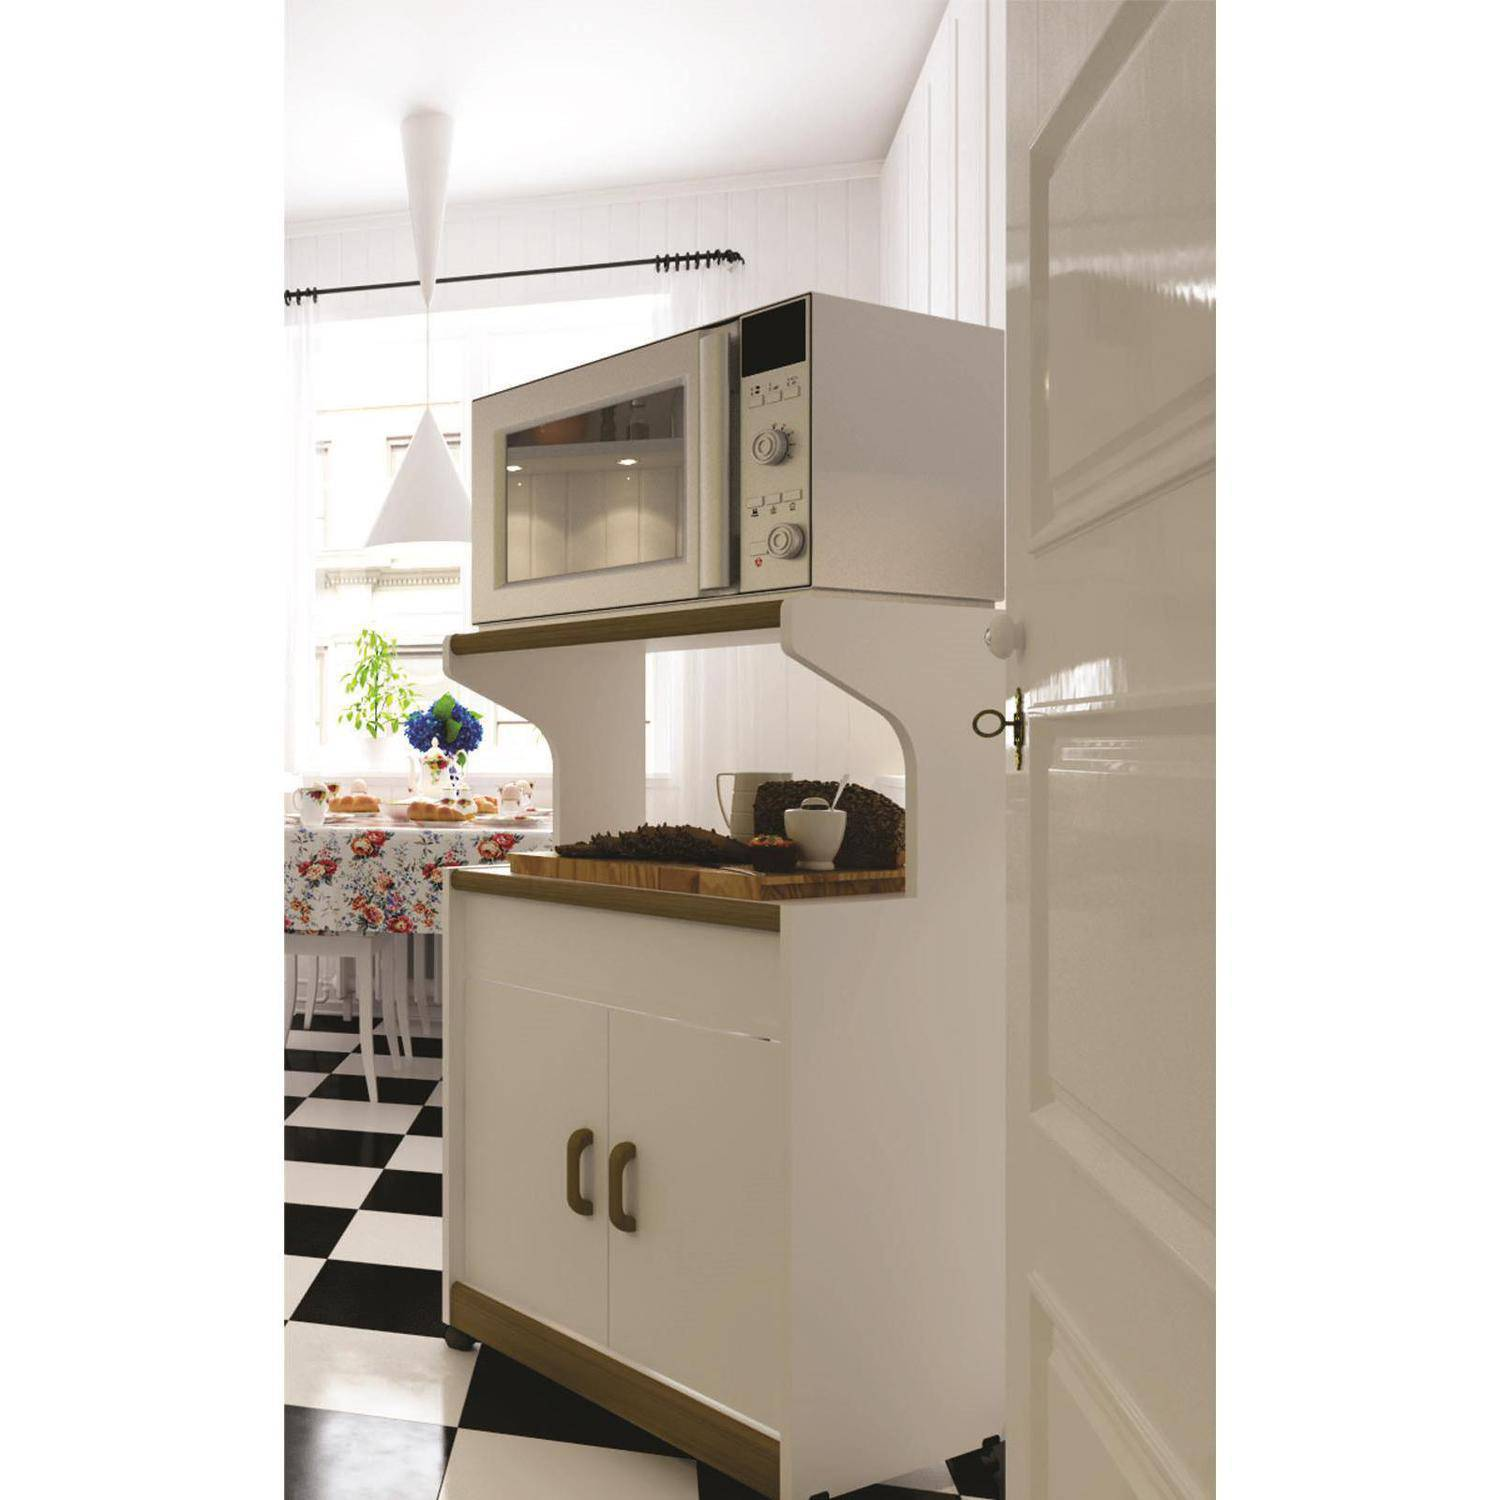 Microwave Cabinet With Shelves, White